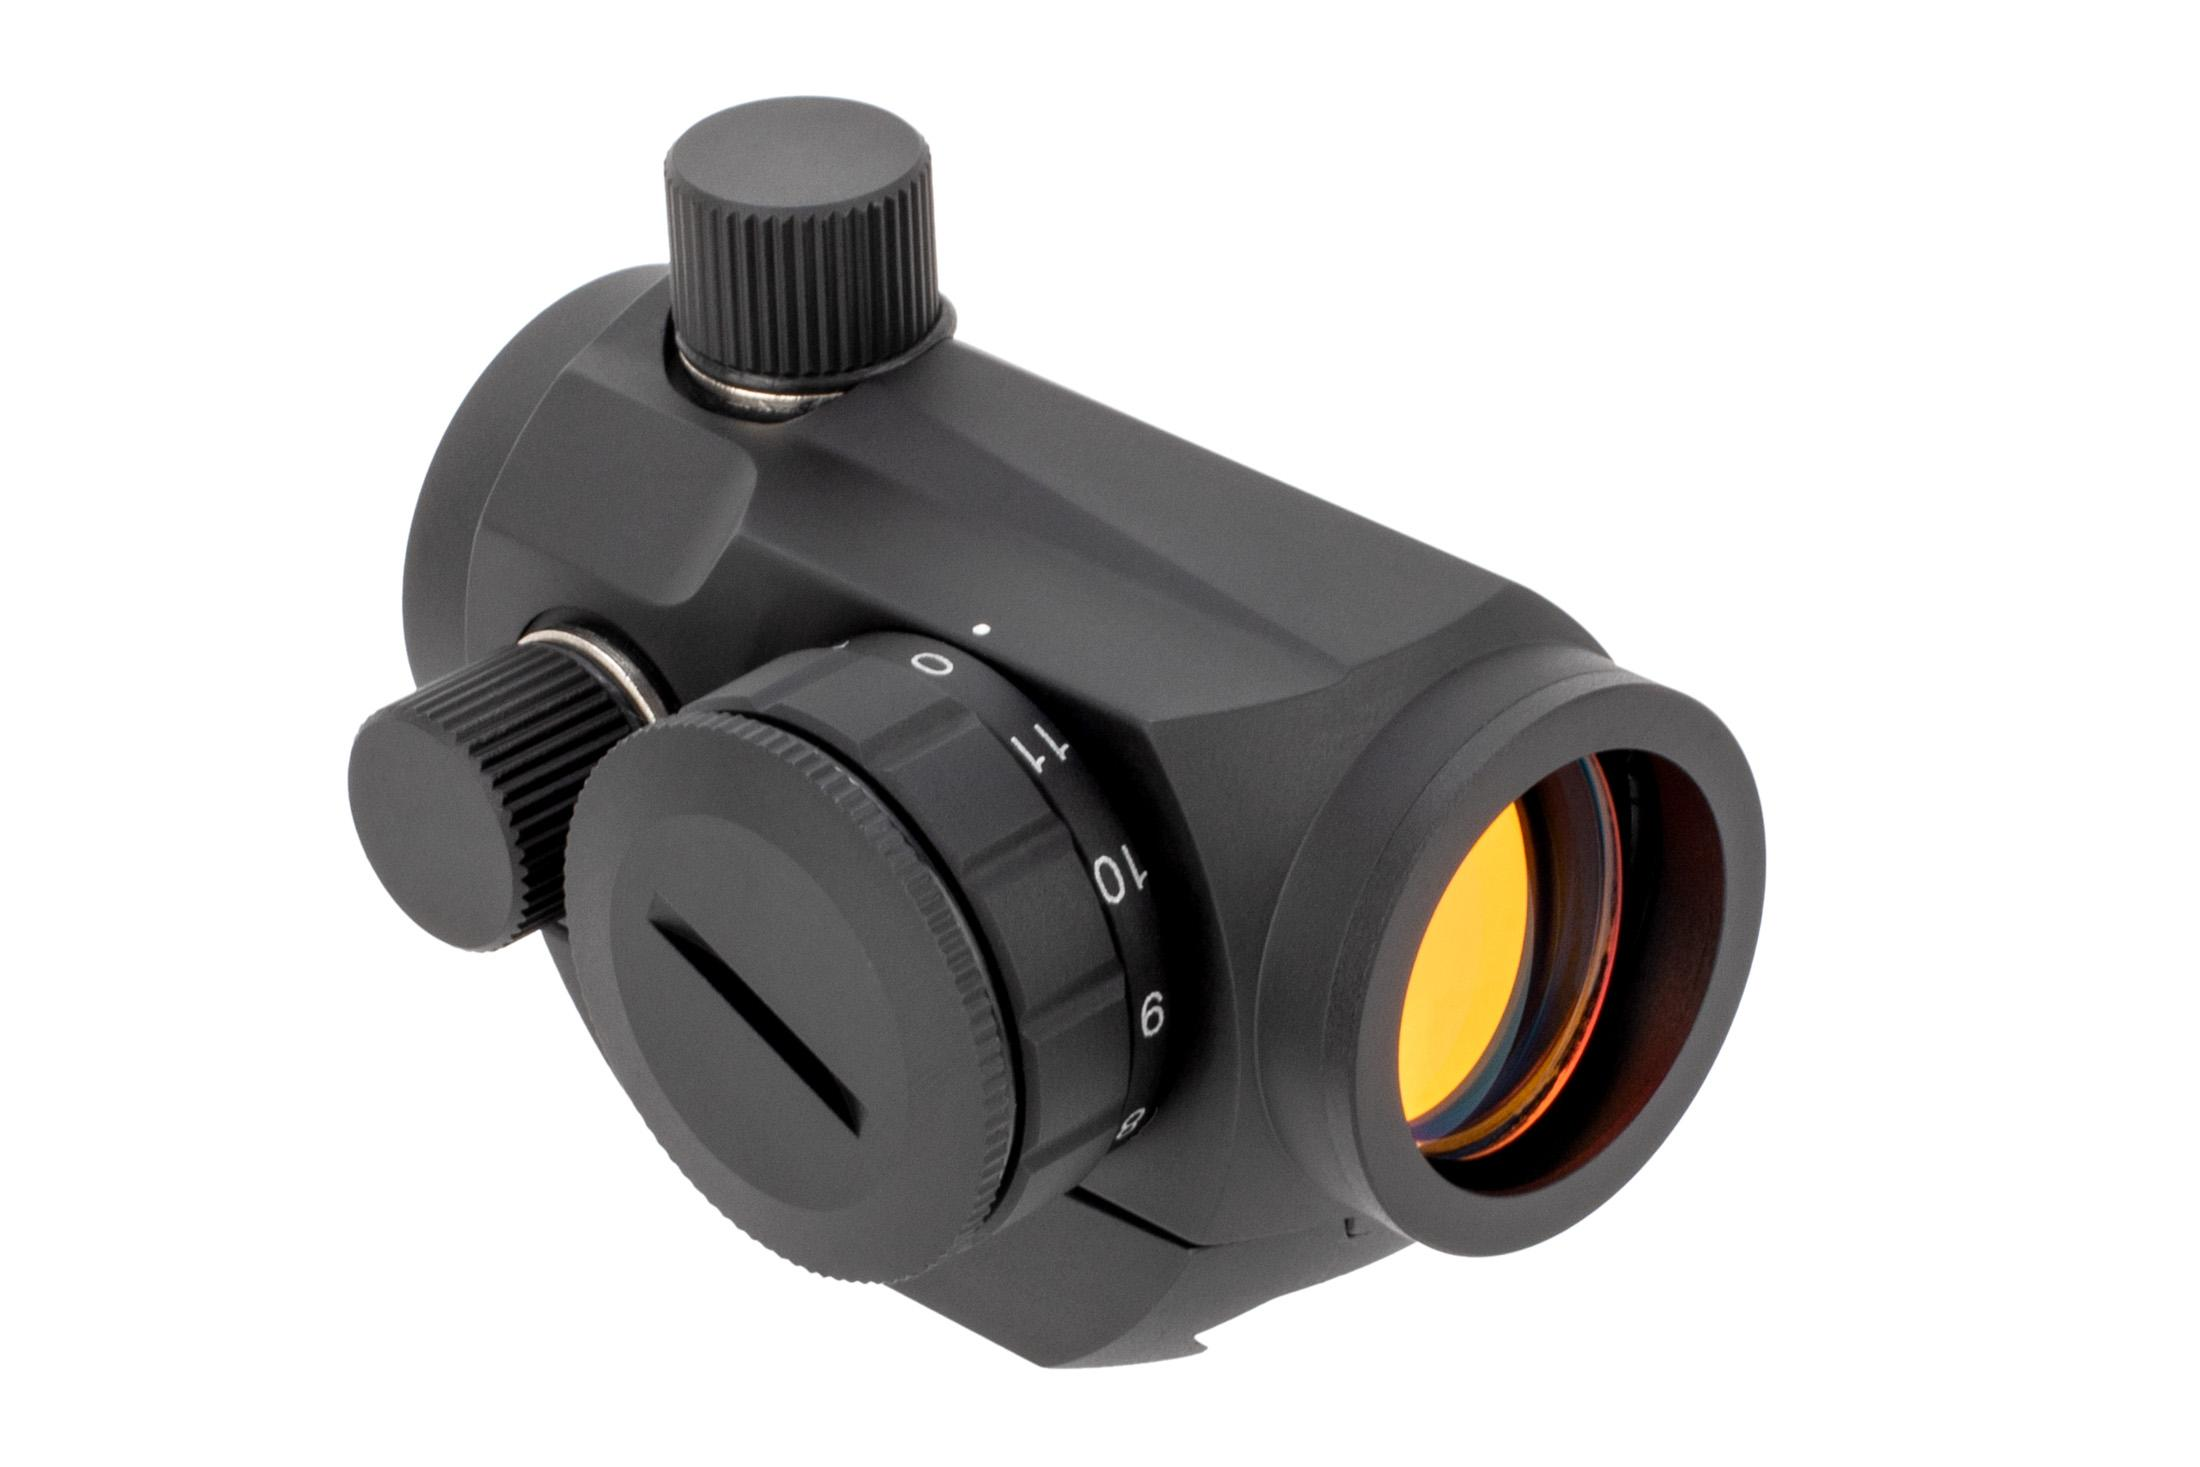 The Primary Arms Micro Dot gen II features a removeable base and illuminated red dot ""